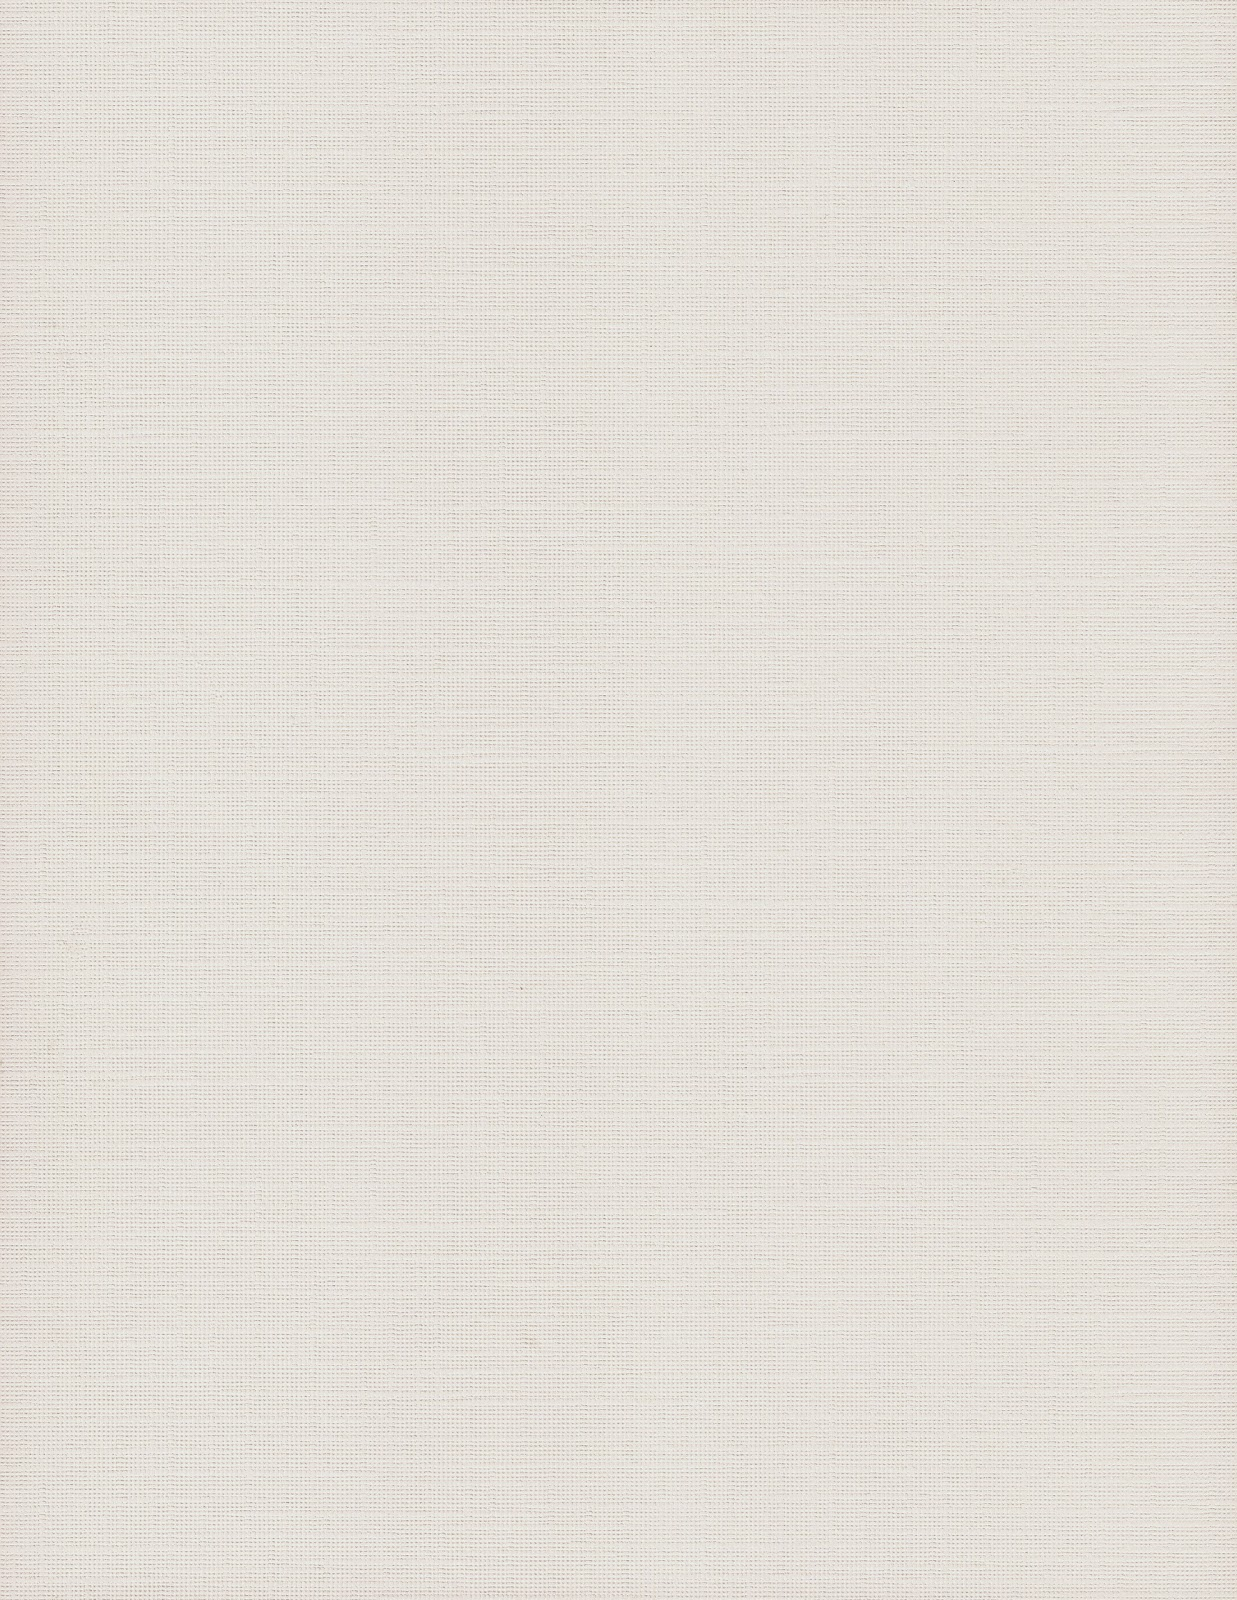 white backdrop paper Photography background paper, photographic and video studio backdrops white black red yellow cream grey crimson photography backgrounds papers, seamless patterned photography background paper patterned background paper, tuf-flock velour paper or vinyl backed photography backdrop, photographic studio.